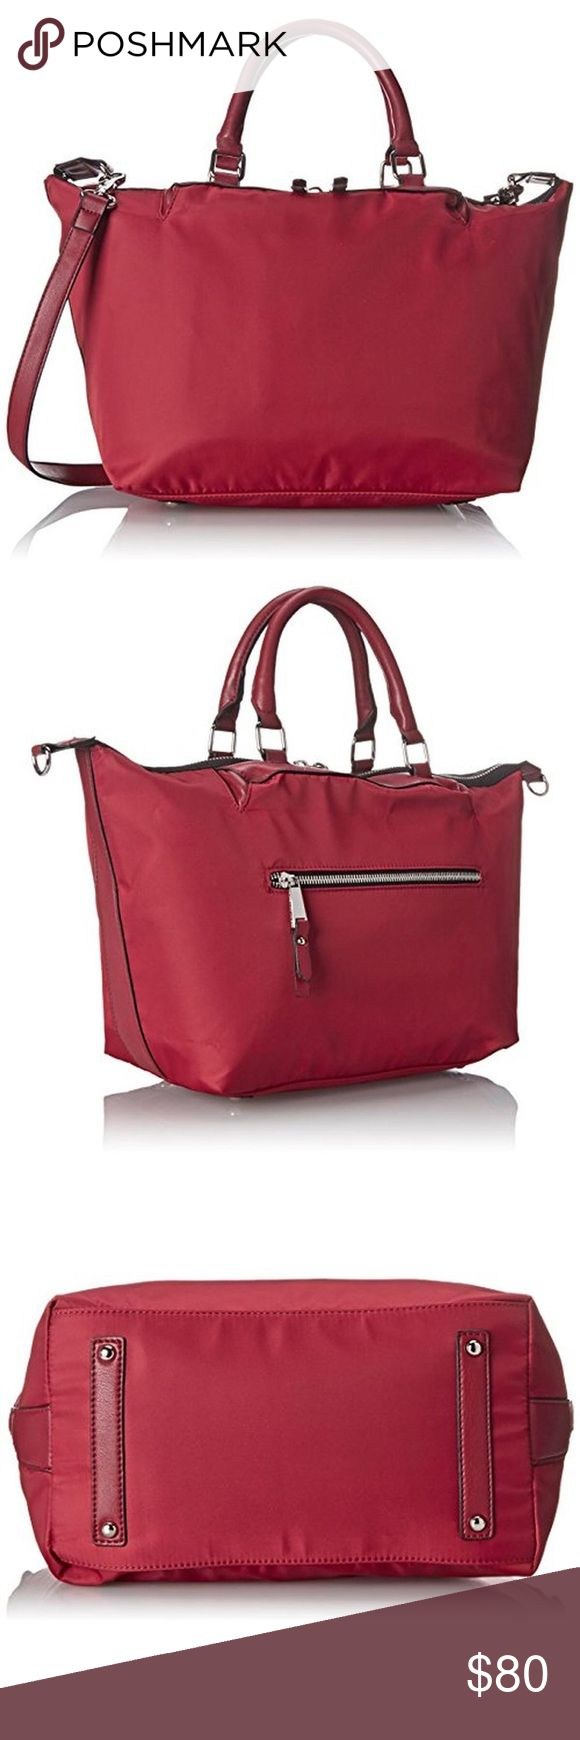 French Connection Piper Red Lined Tote Handbag. French Connection Piper Red Lined Tote Handbag Purse Large.  Manufacturer Color: Red Condition: New with tags Style Type: Tote Bag Collection: French Connection Handle Type: Double Compartment: Open Slip Closure: Two-Way Zip Bag Height (Inches): 9 1/2 Inches Bag Width (Inches): 13 1/2 Inches Bag Depth (Inches): 6 Inches Strap Drop (Inches): 21 Inches Material: PU/Nylon/Cotton/Polyester Fabric Type: Nylon Specialty: Faux Leather Trim Removable…